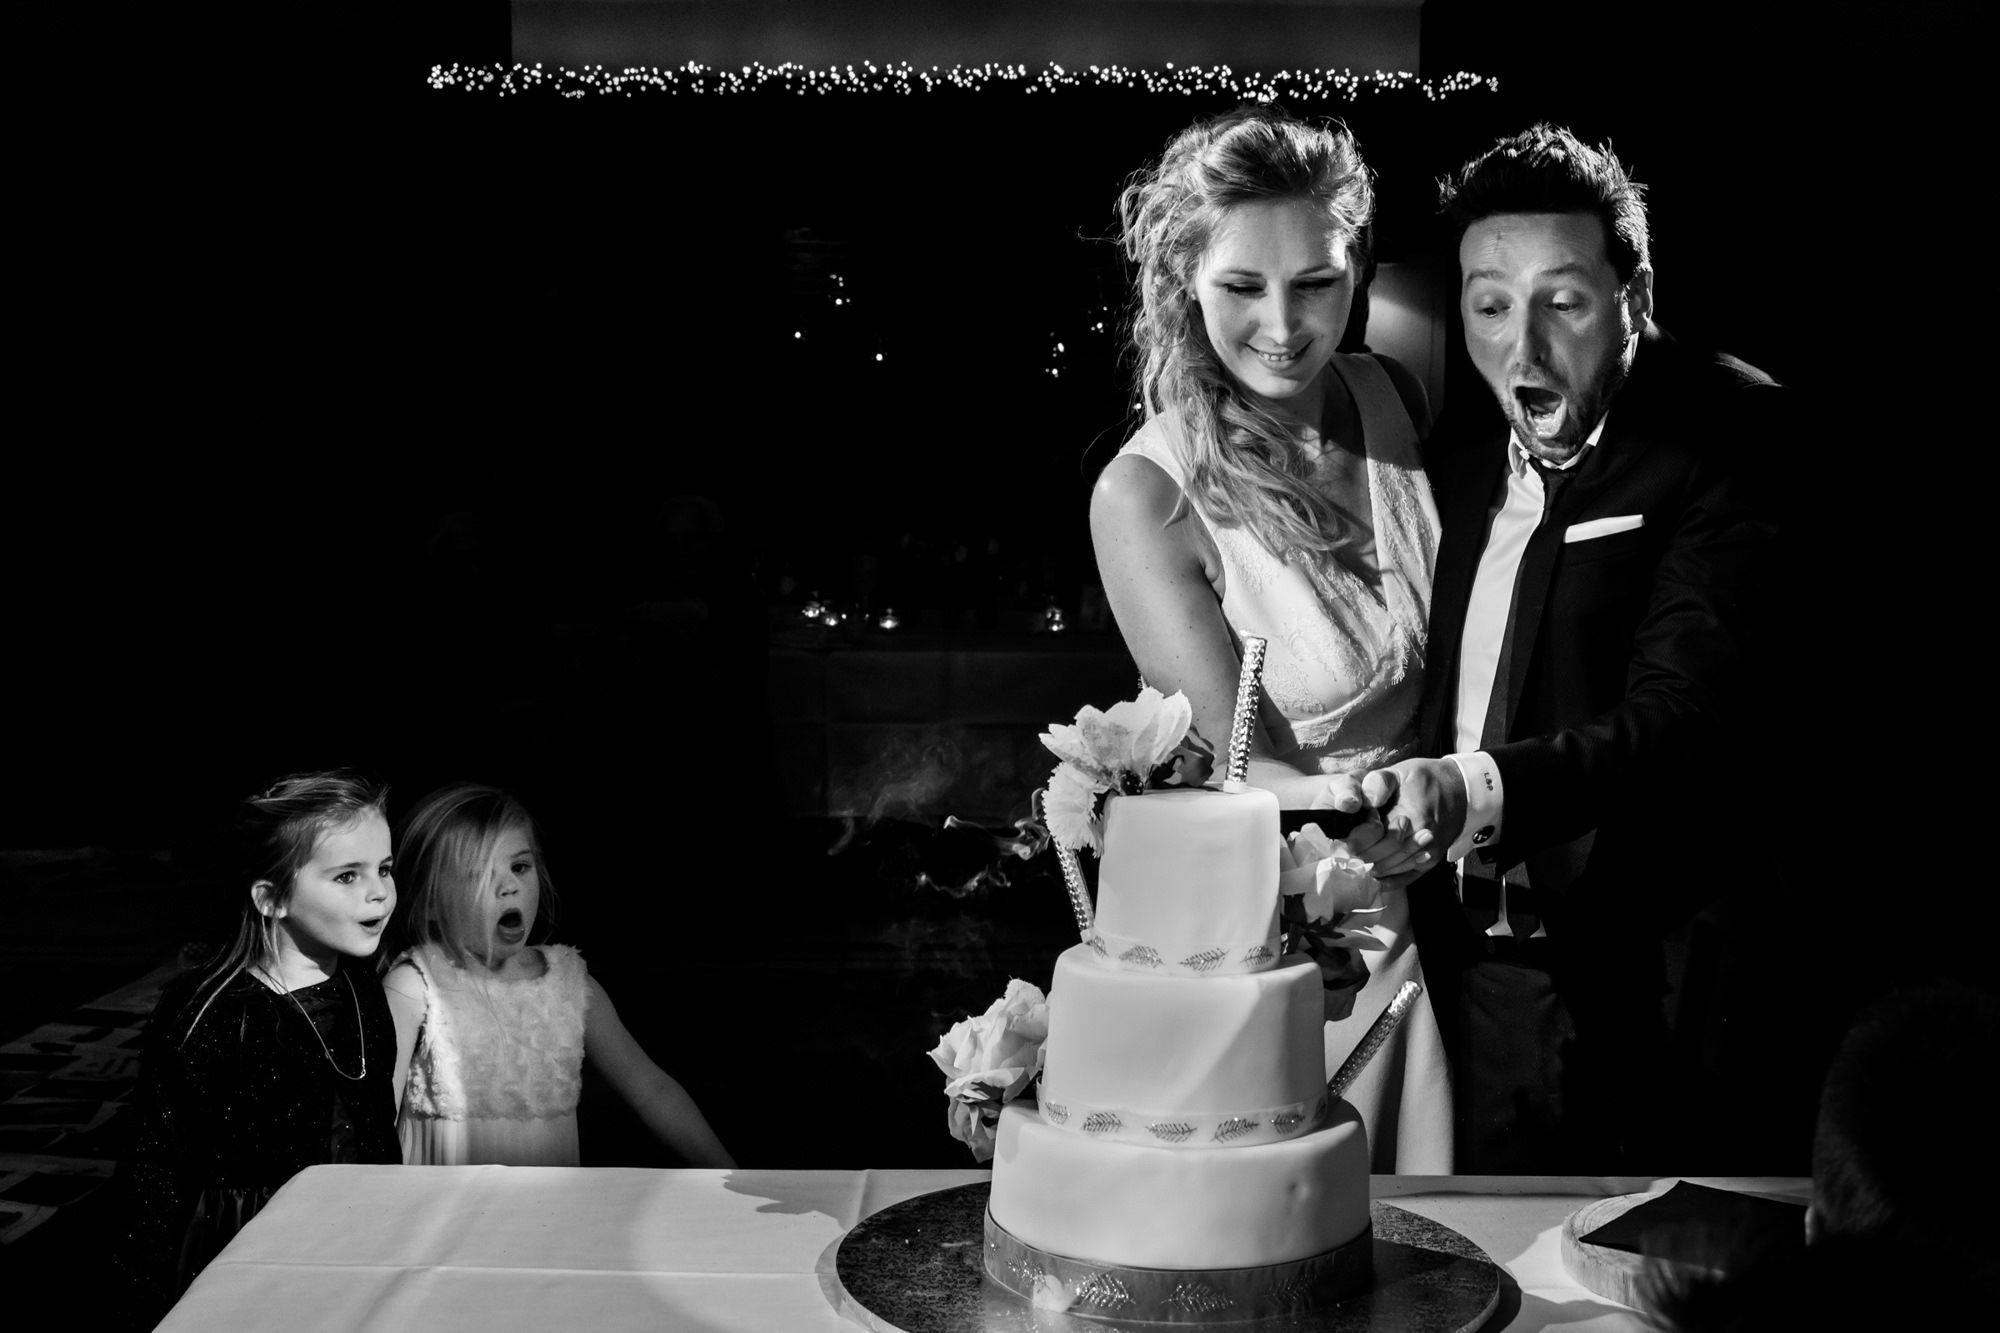 Kids marveling at cake cutting photo by Fotobelle: Isabelle Hattink